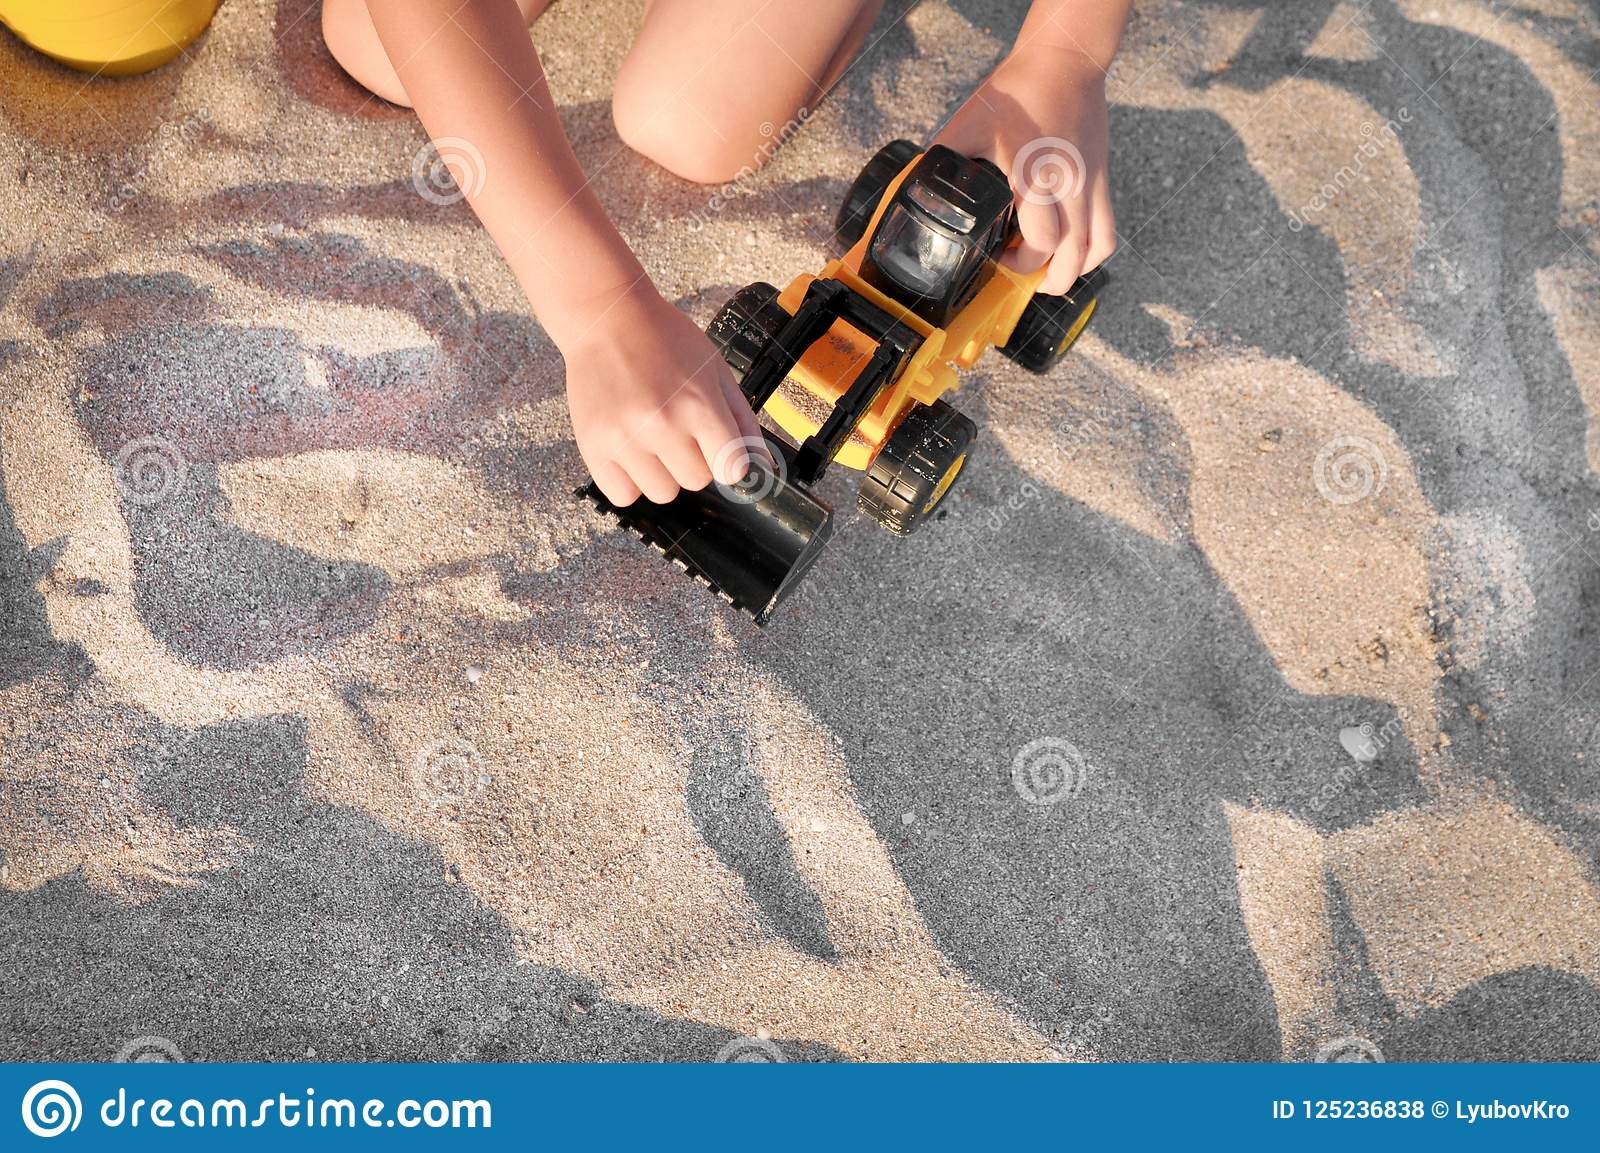 Child playing with a toy tractor on the beach.